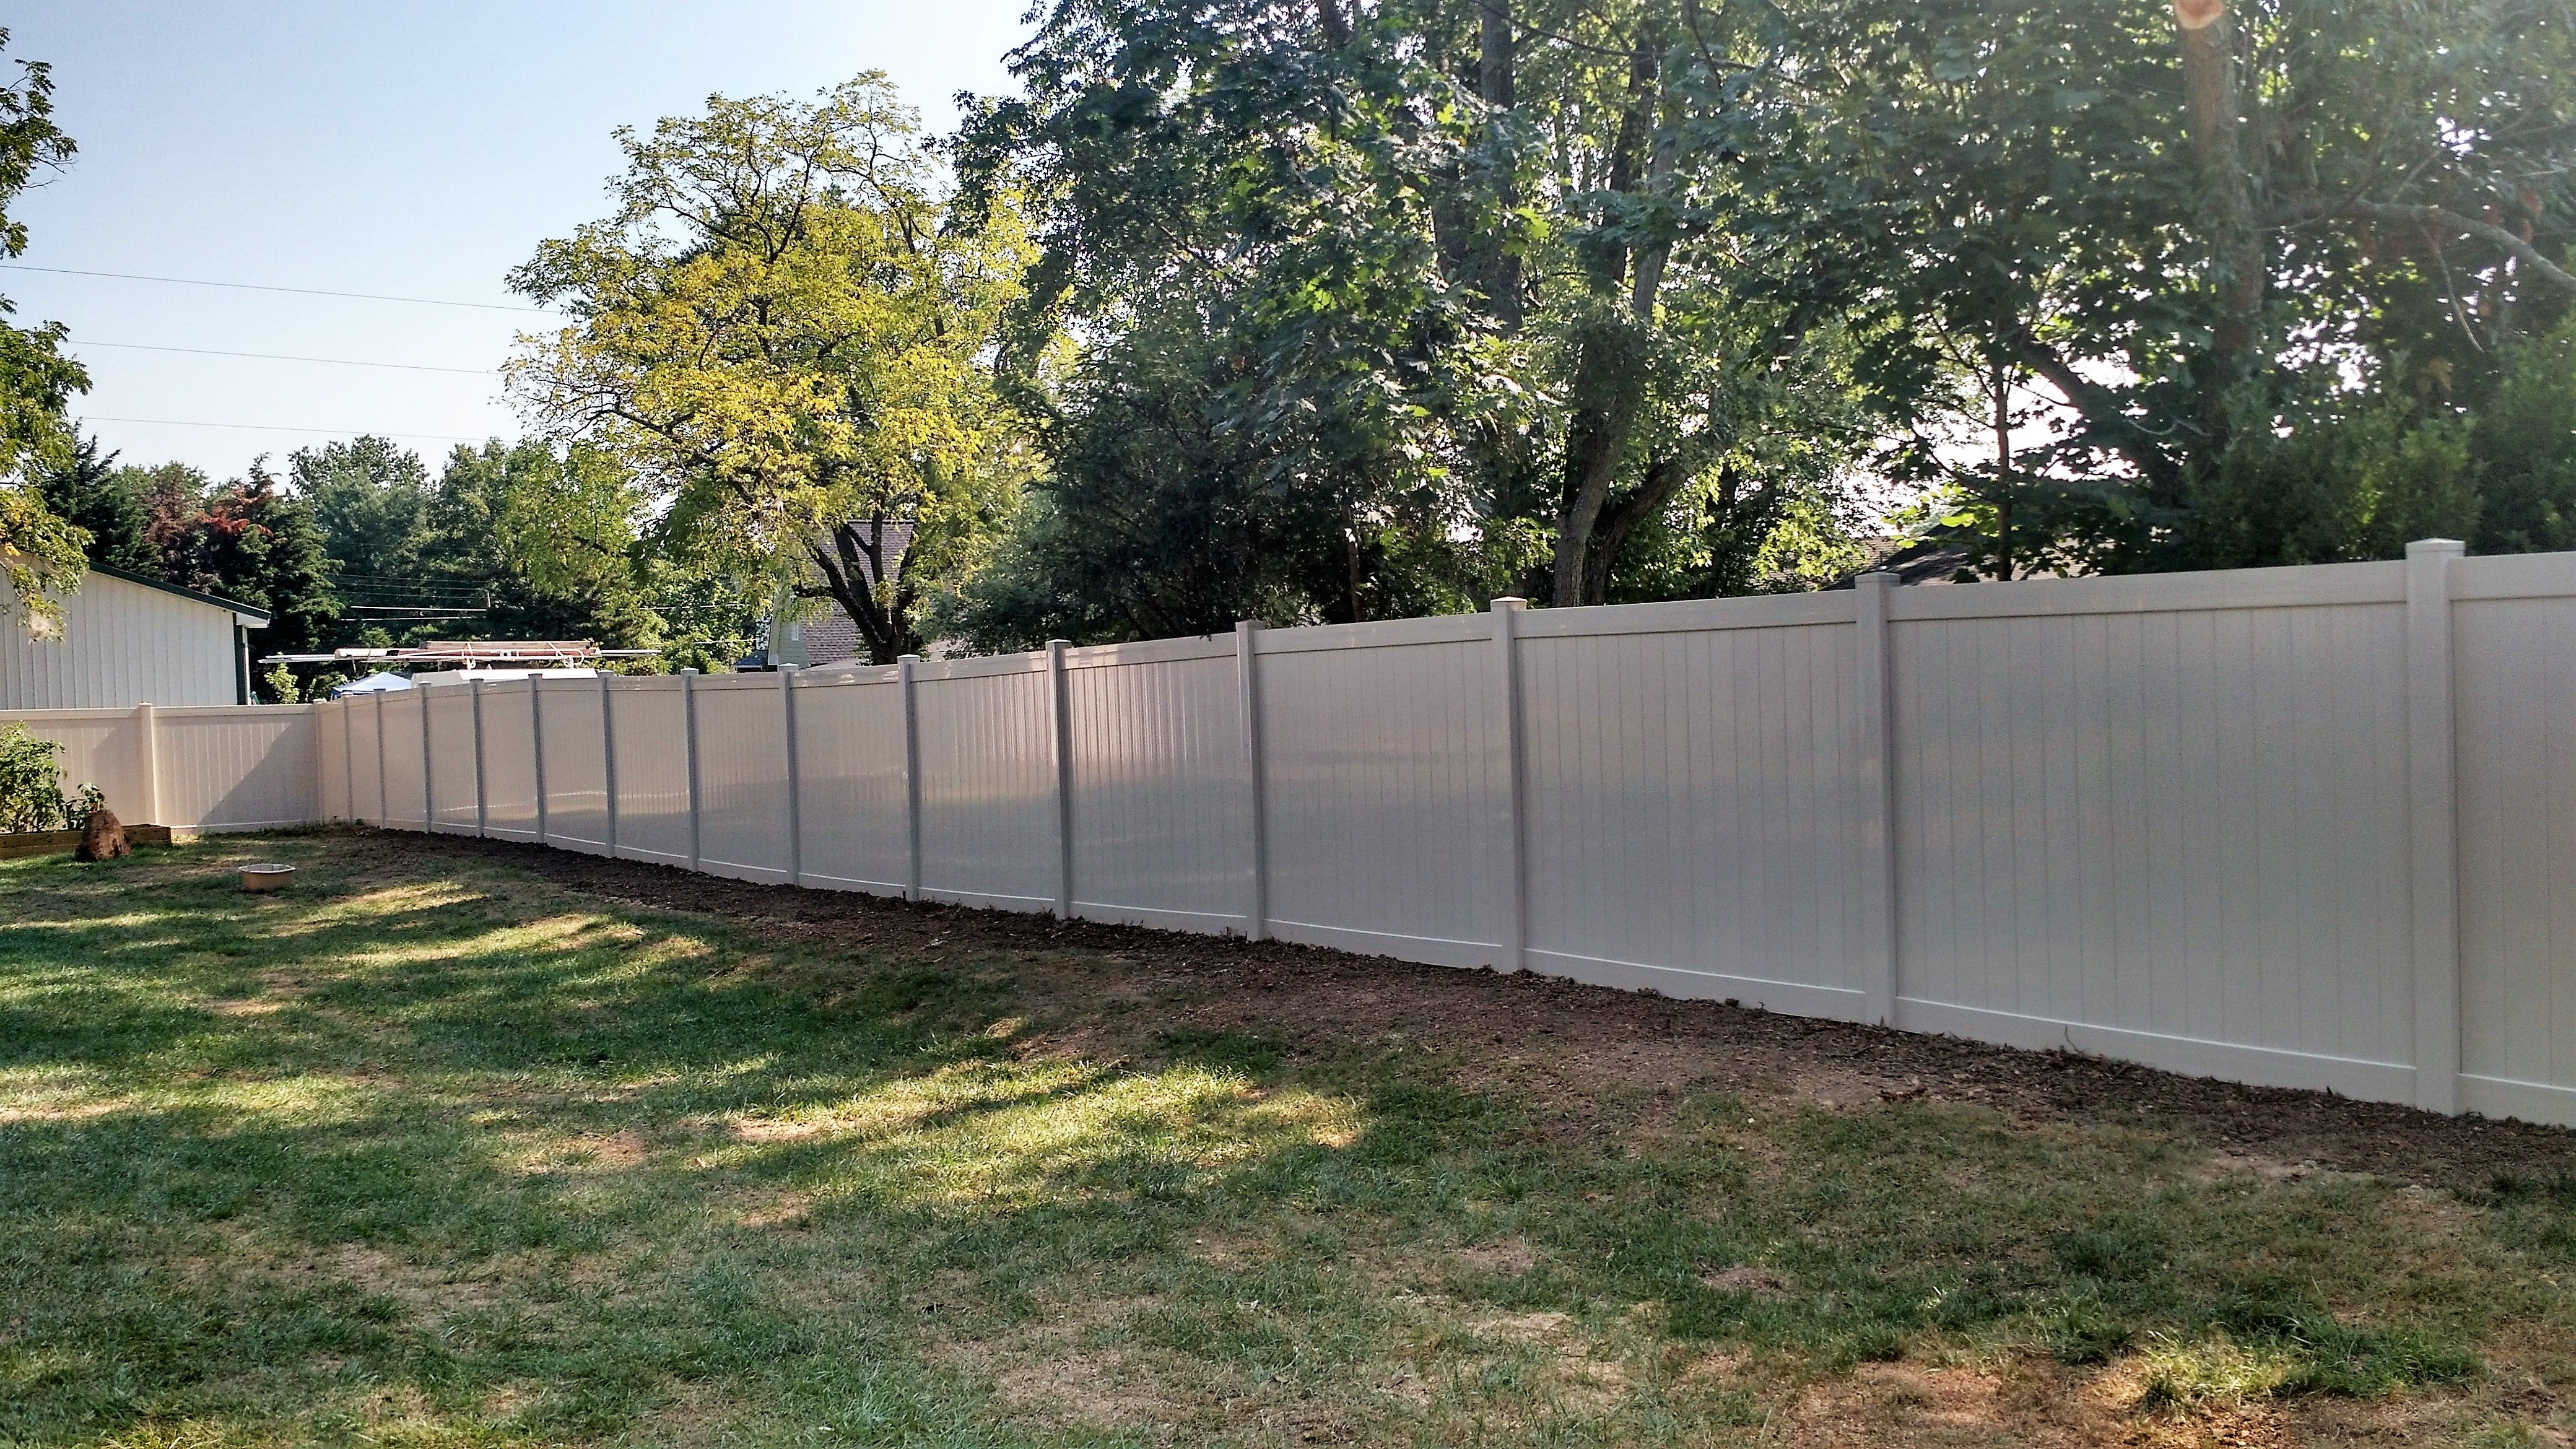 Vinyl Privacy Fence Color Almond Vinyl Fence Colors Vinyl Fence Panels Fence Panels For Sale